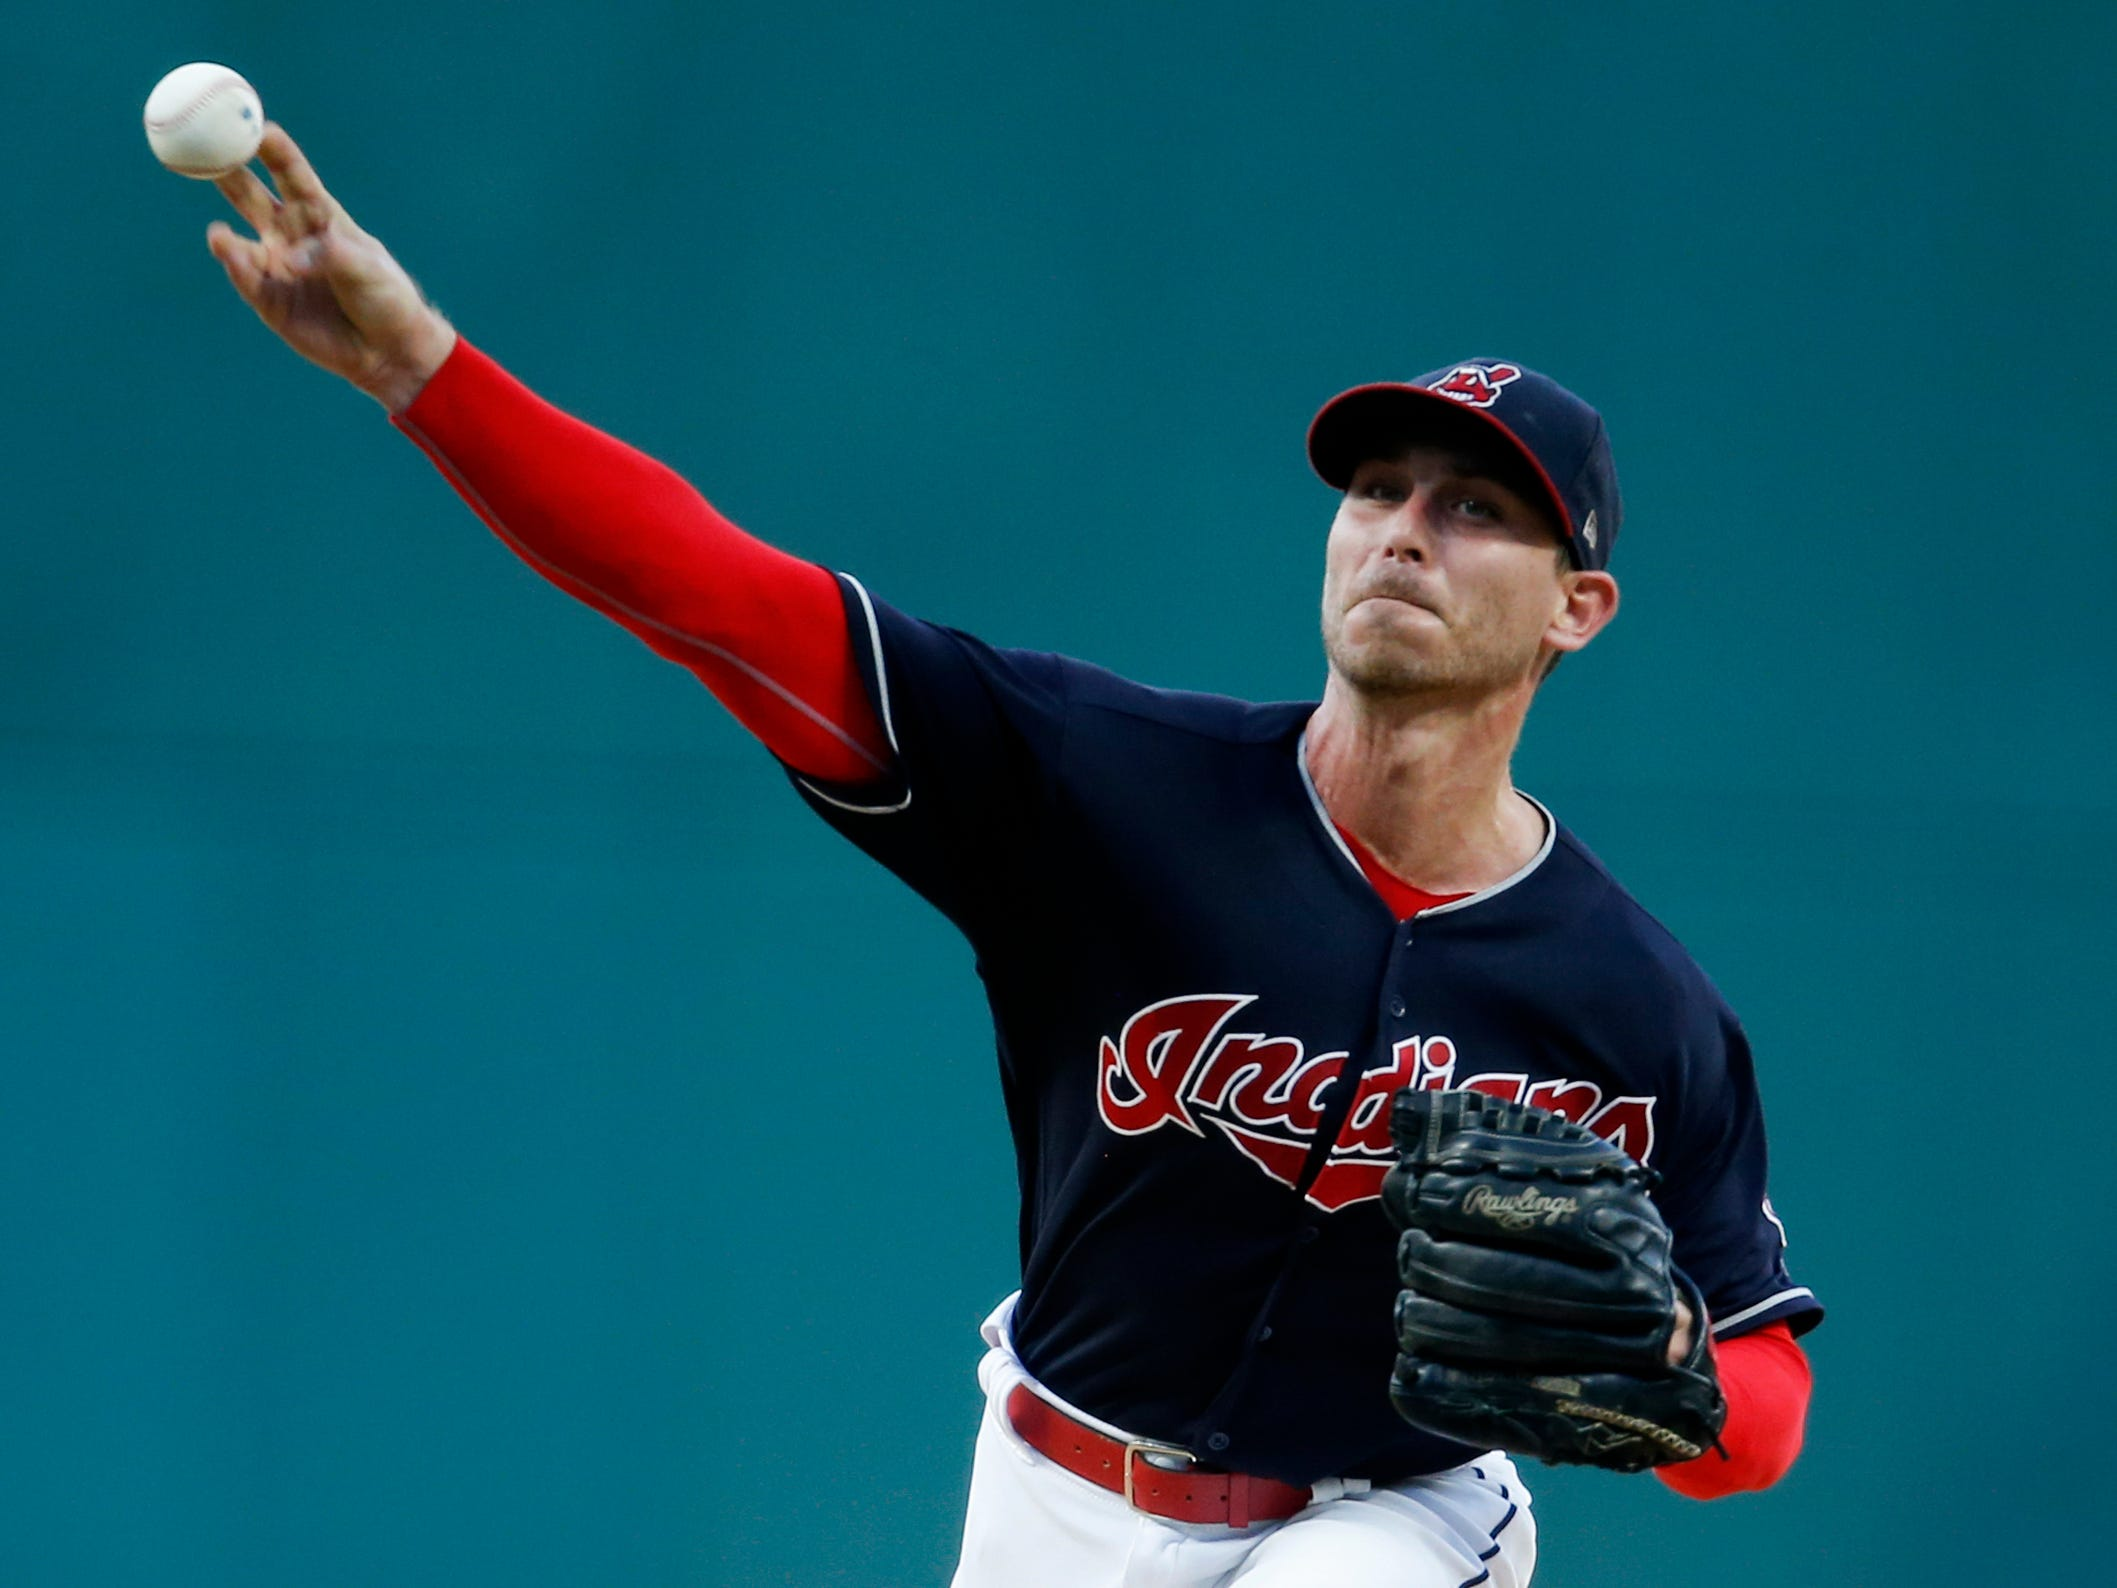 Cleveland Indians starting pitcher Josh Tomlin delivers against the Detroit Tigers during the first inning of a baseball game, Friday, Sept. 14, 2018, in Cleveland.